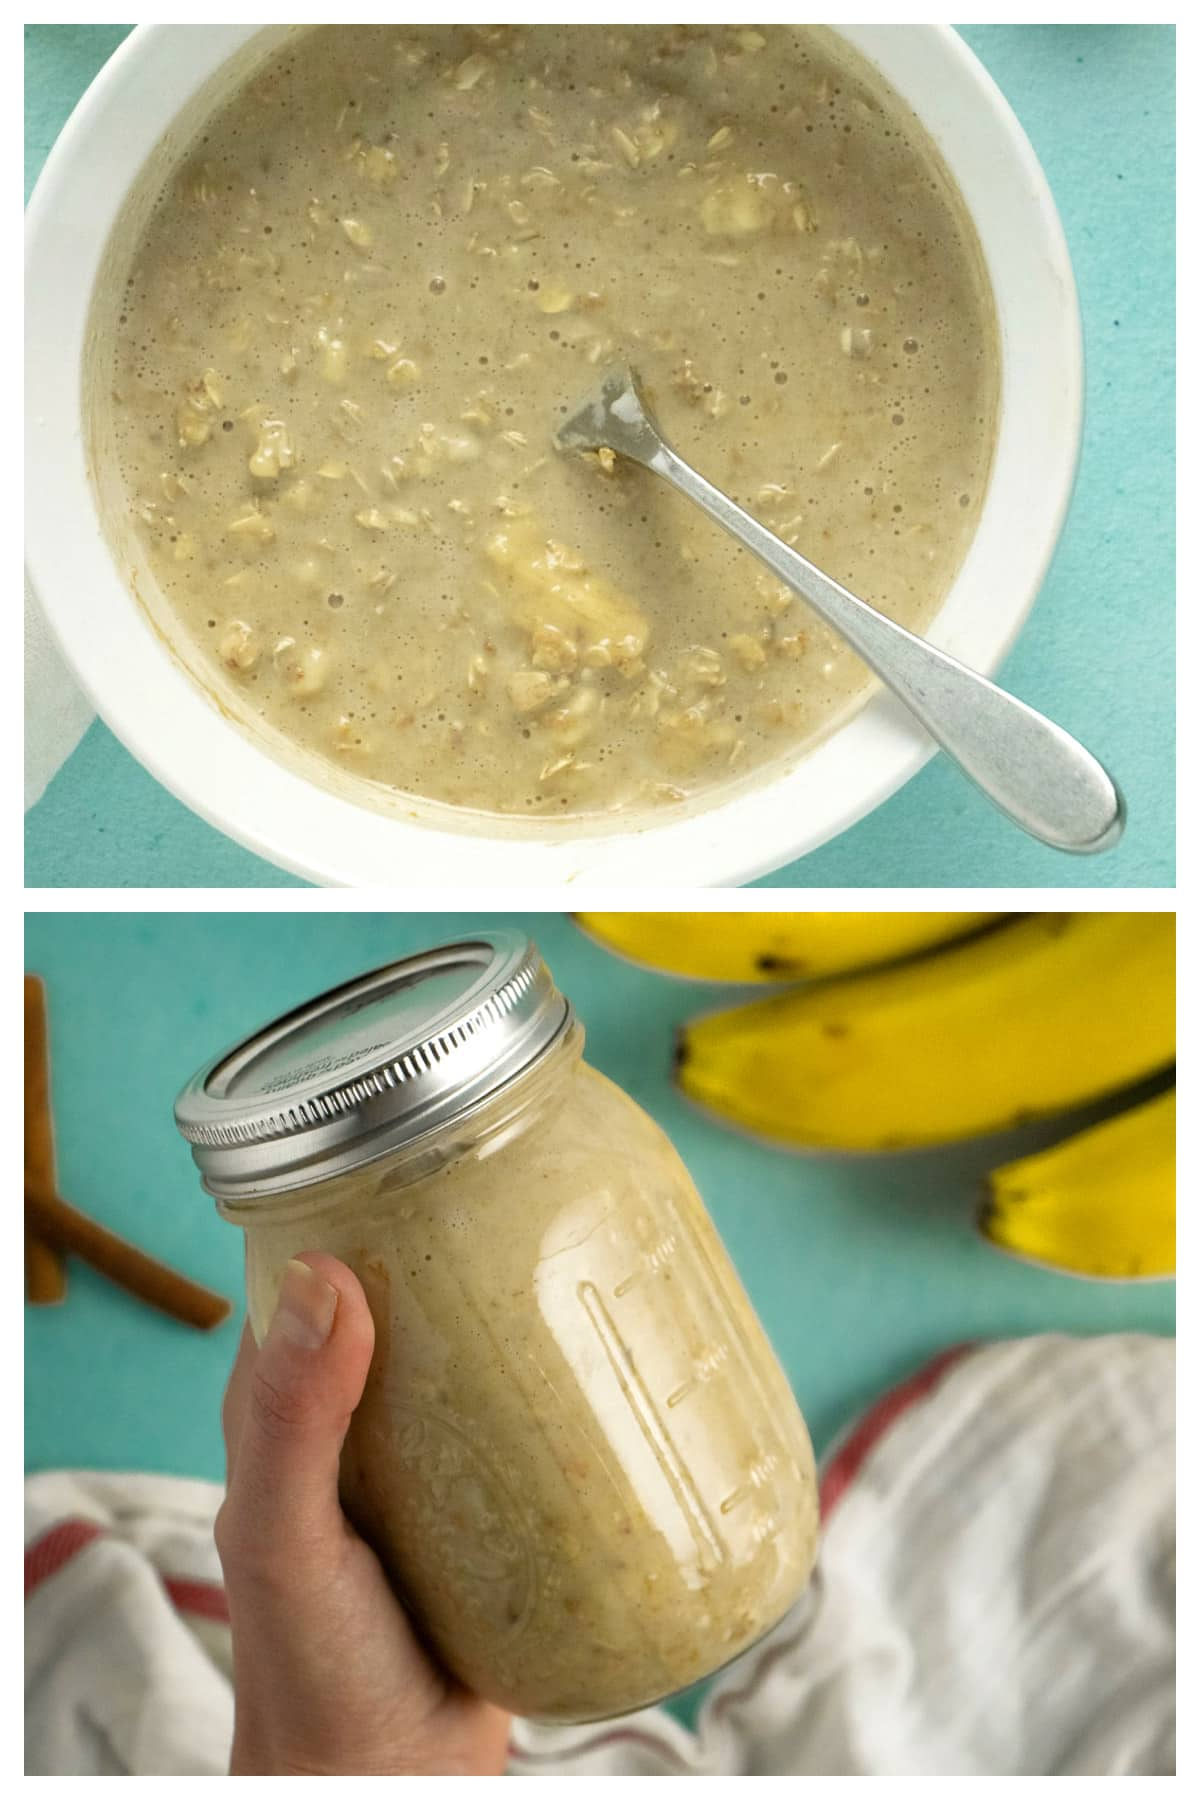 image collage showing the fully mixed oats in a bowl and in the pint jar